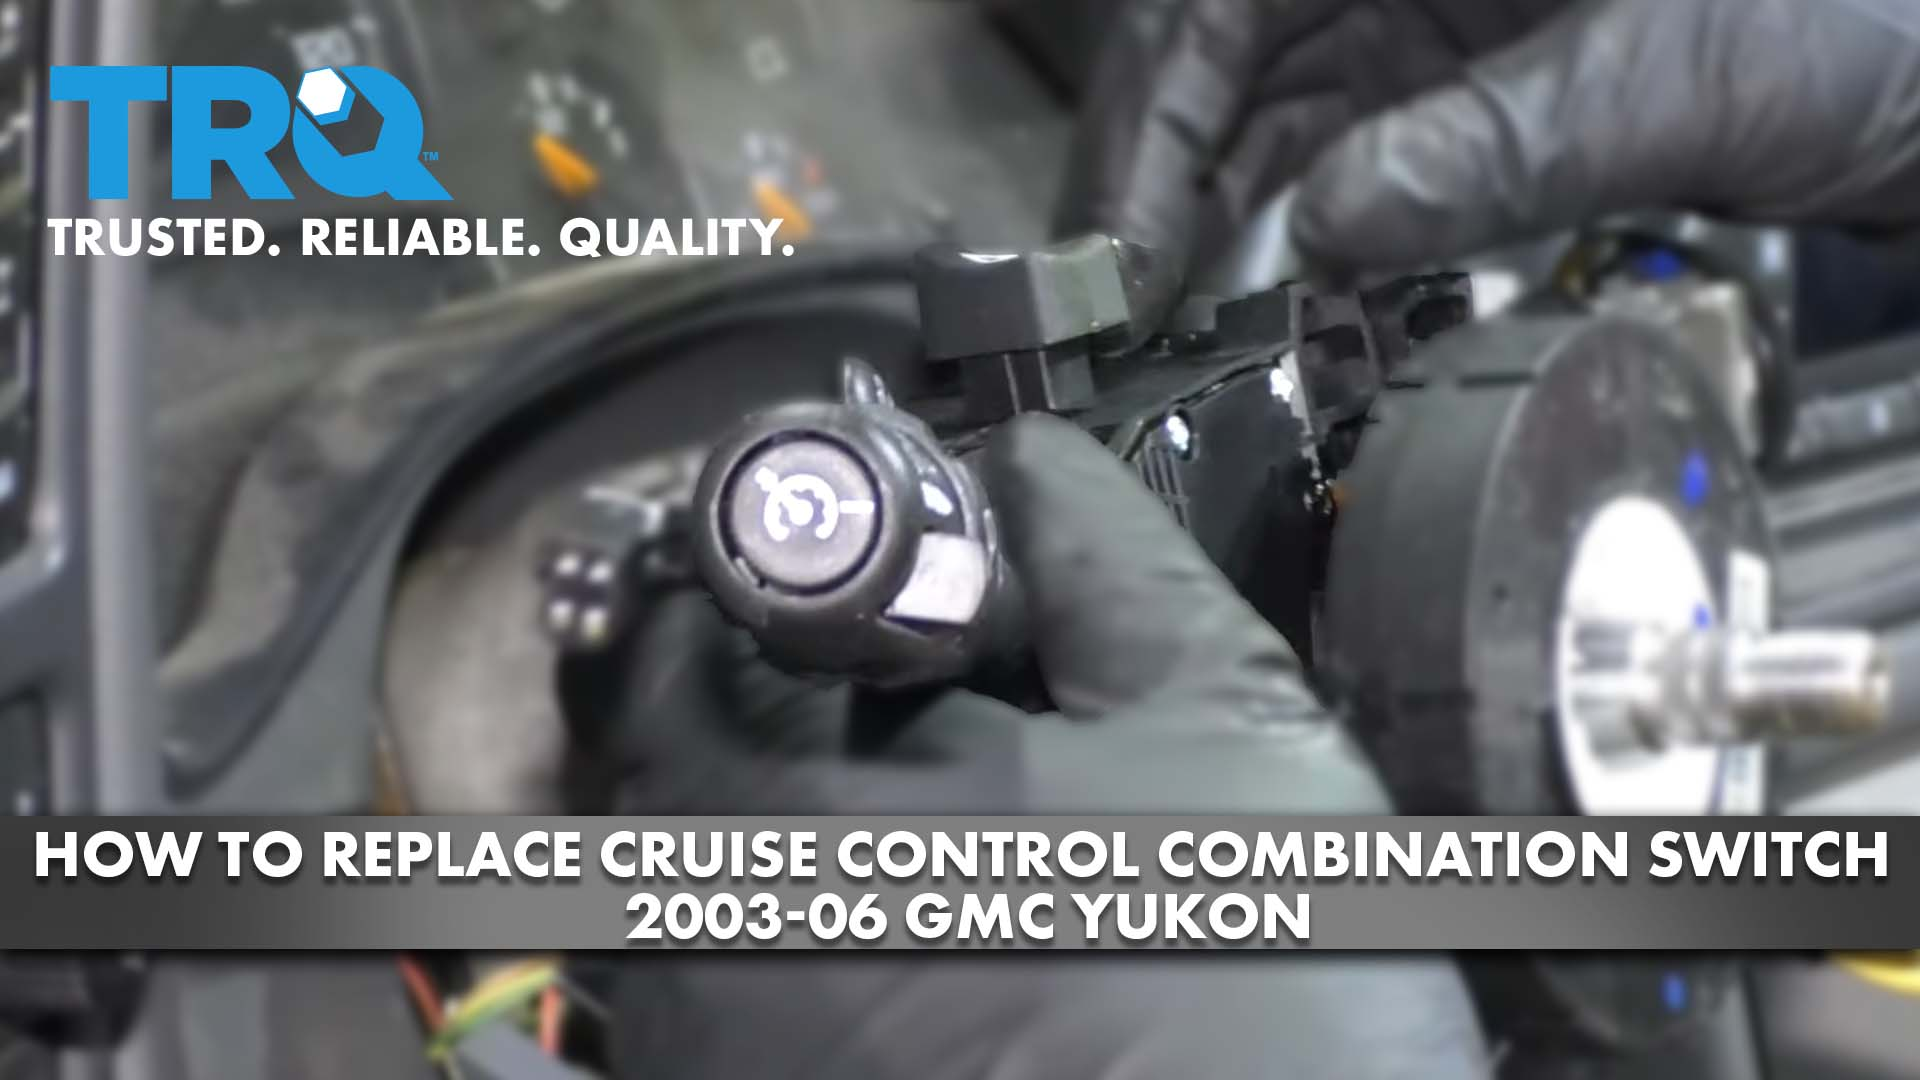 How to Replace Cruise Control Combination Switch 2003-06 GMC Yukon